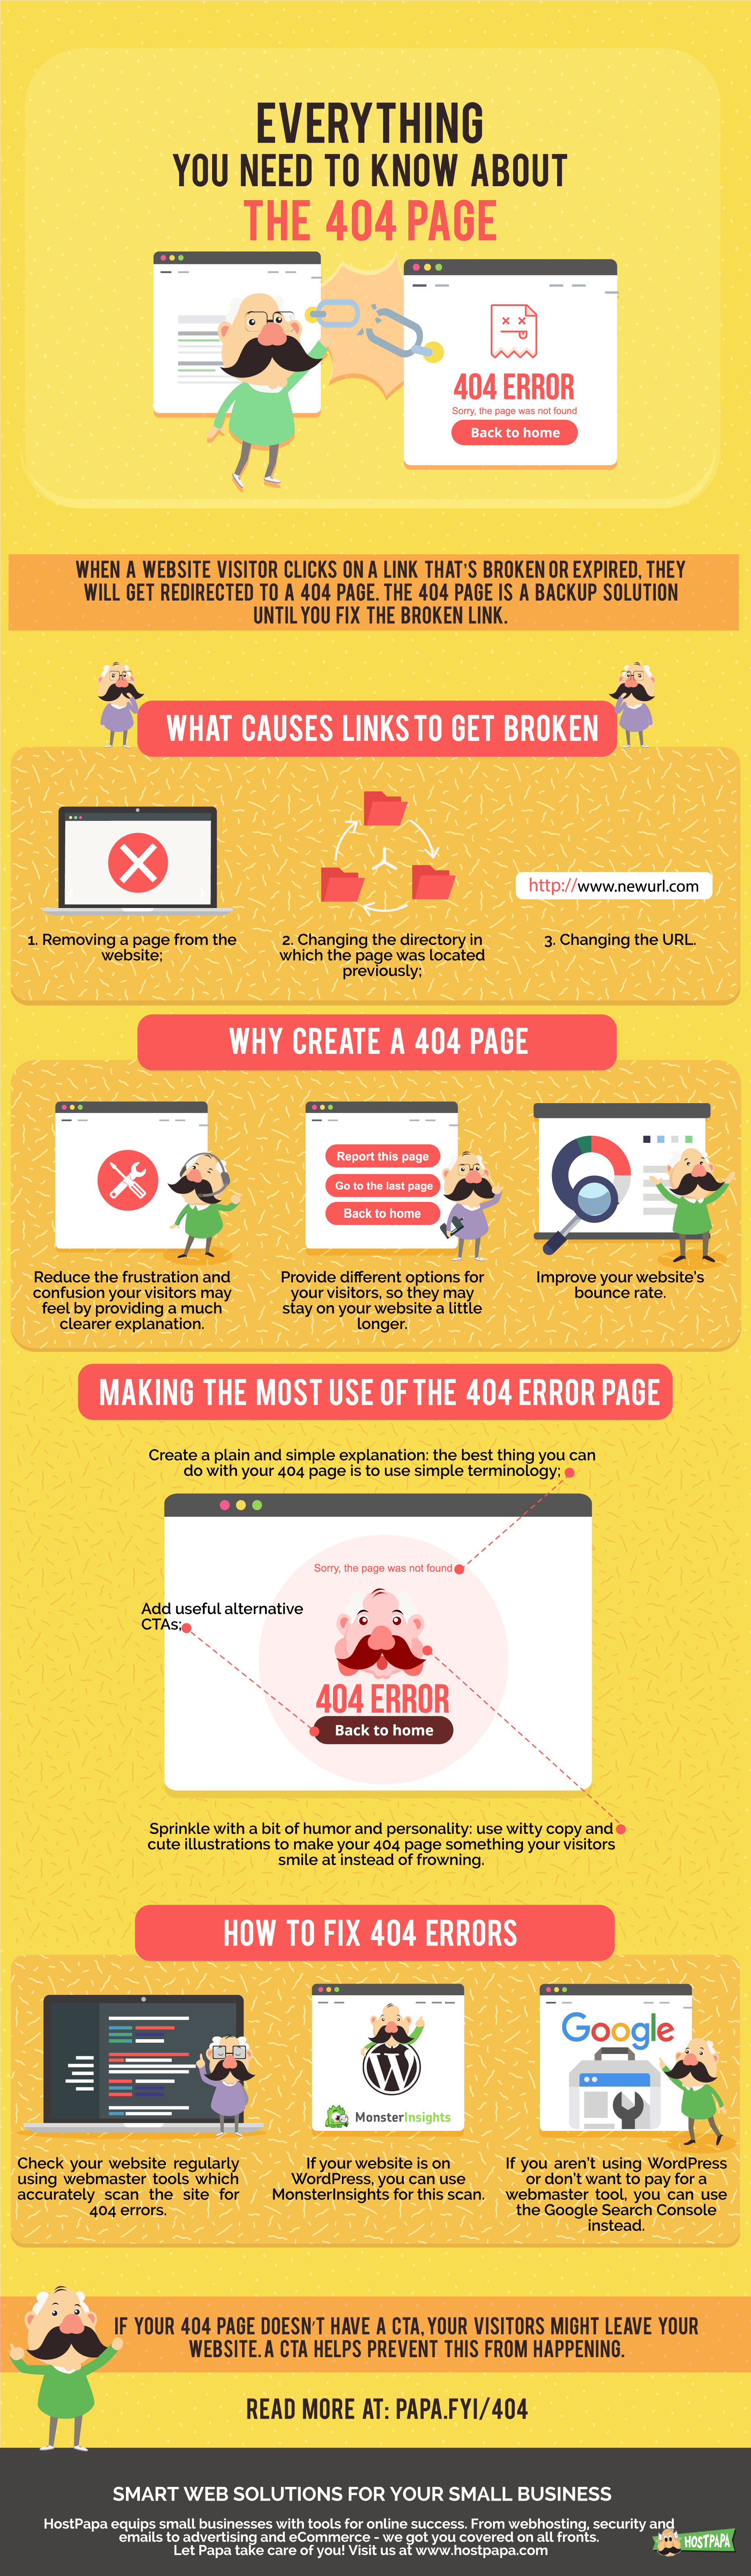 Infographic: The 404 Page - HostPapa Blog